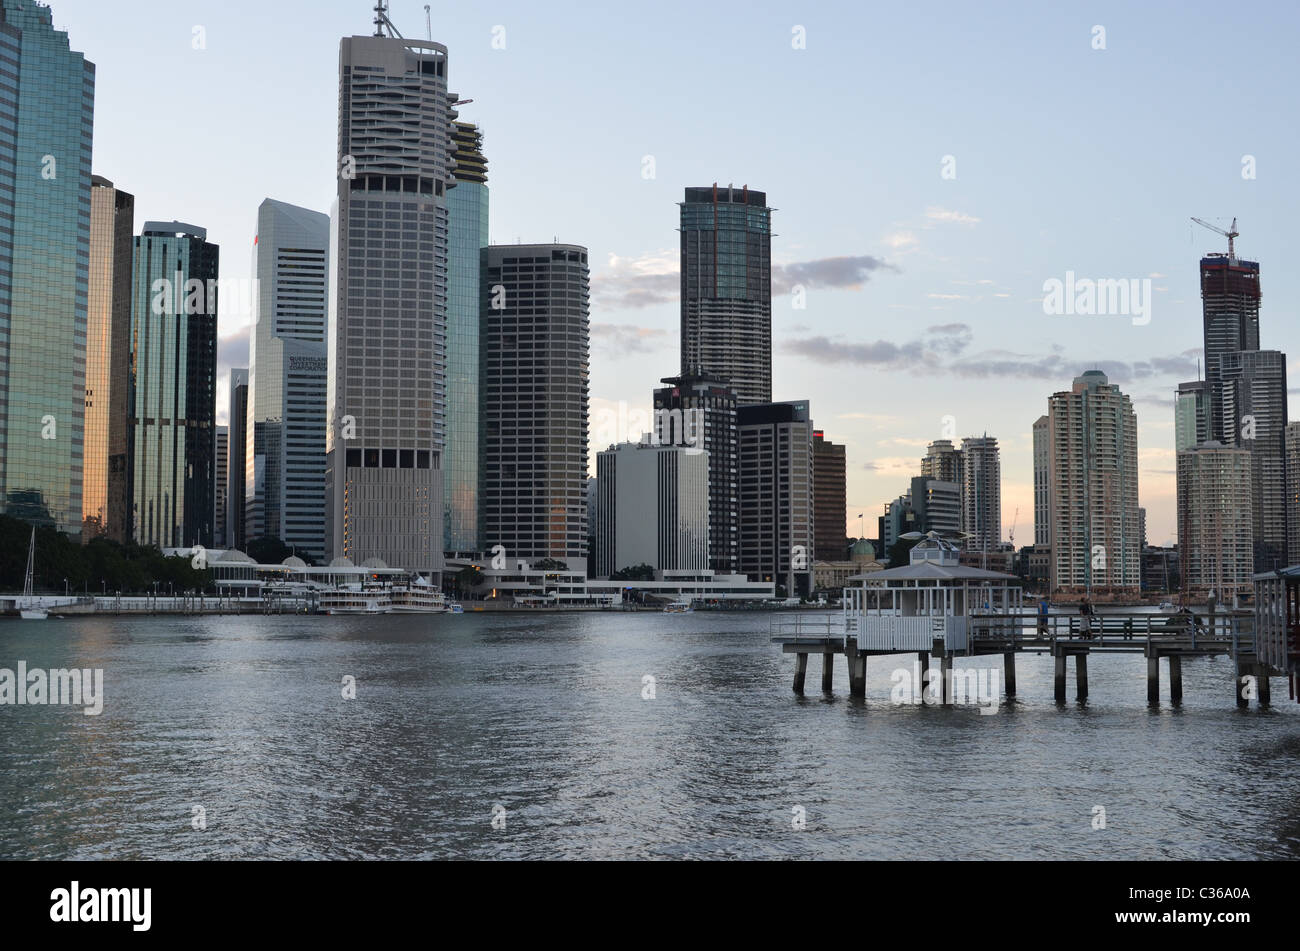 Brisbane City late in the afternoon. The Brisbane River is in the foreground. - Stock Image